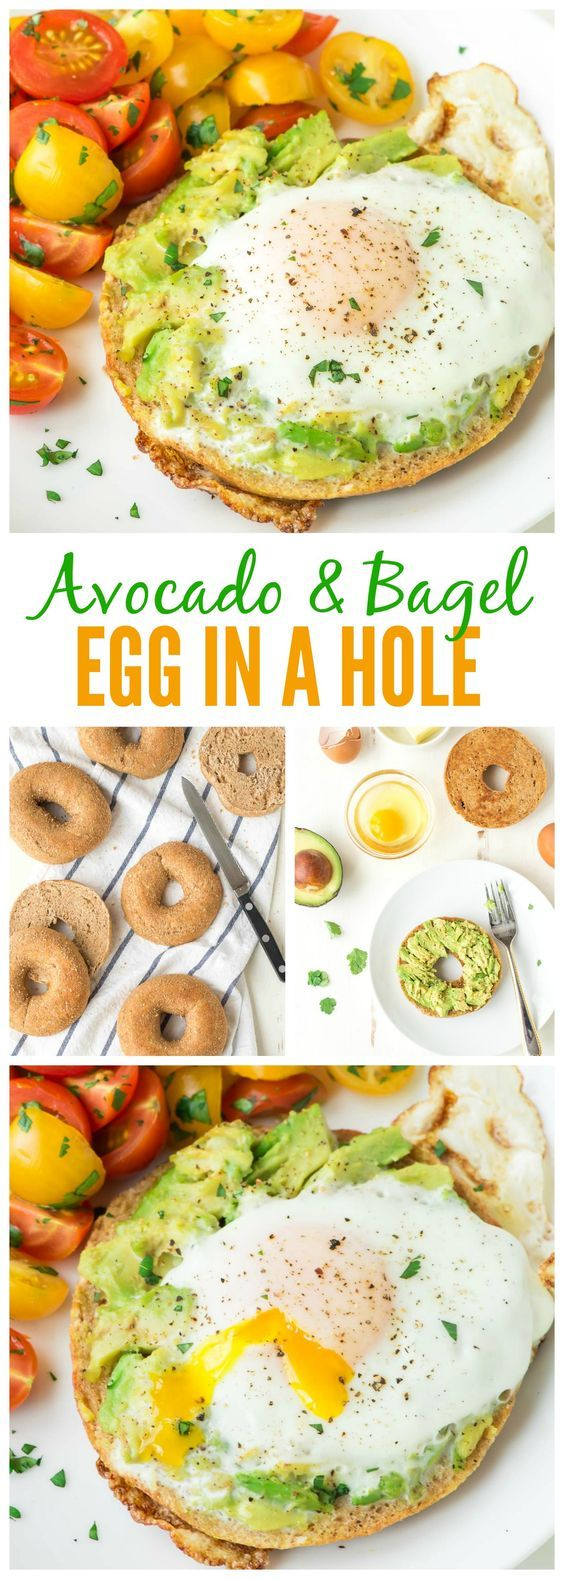 Egg in a Hole, cooked inside a bagel with smashed avocado on top. Our family's favorite breakfast, and it's perfect for easy, healthy lunches and dinners too! Recipe at www.wellplated.com   @wellplated